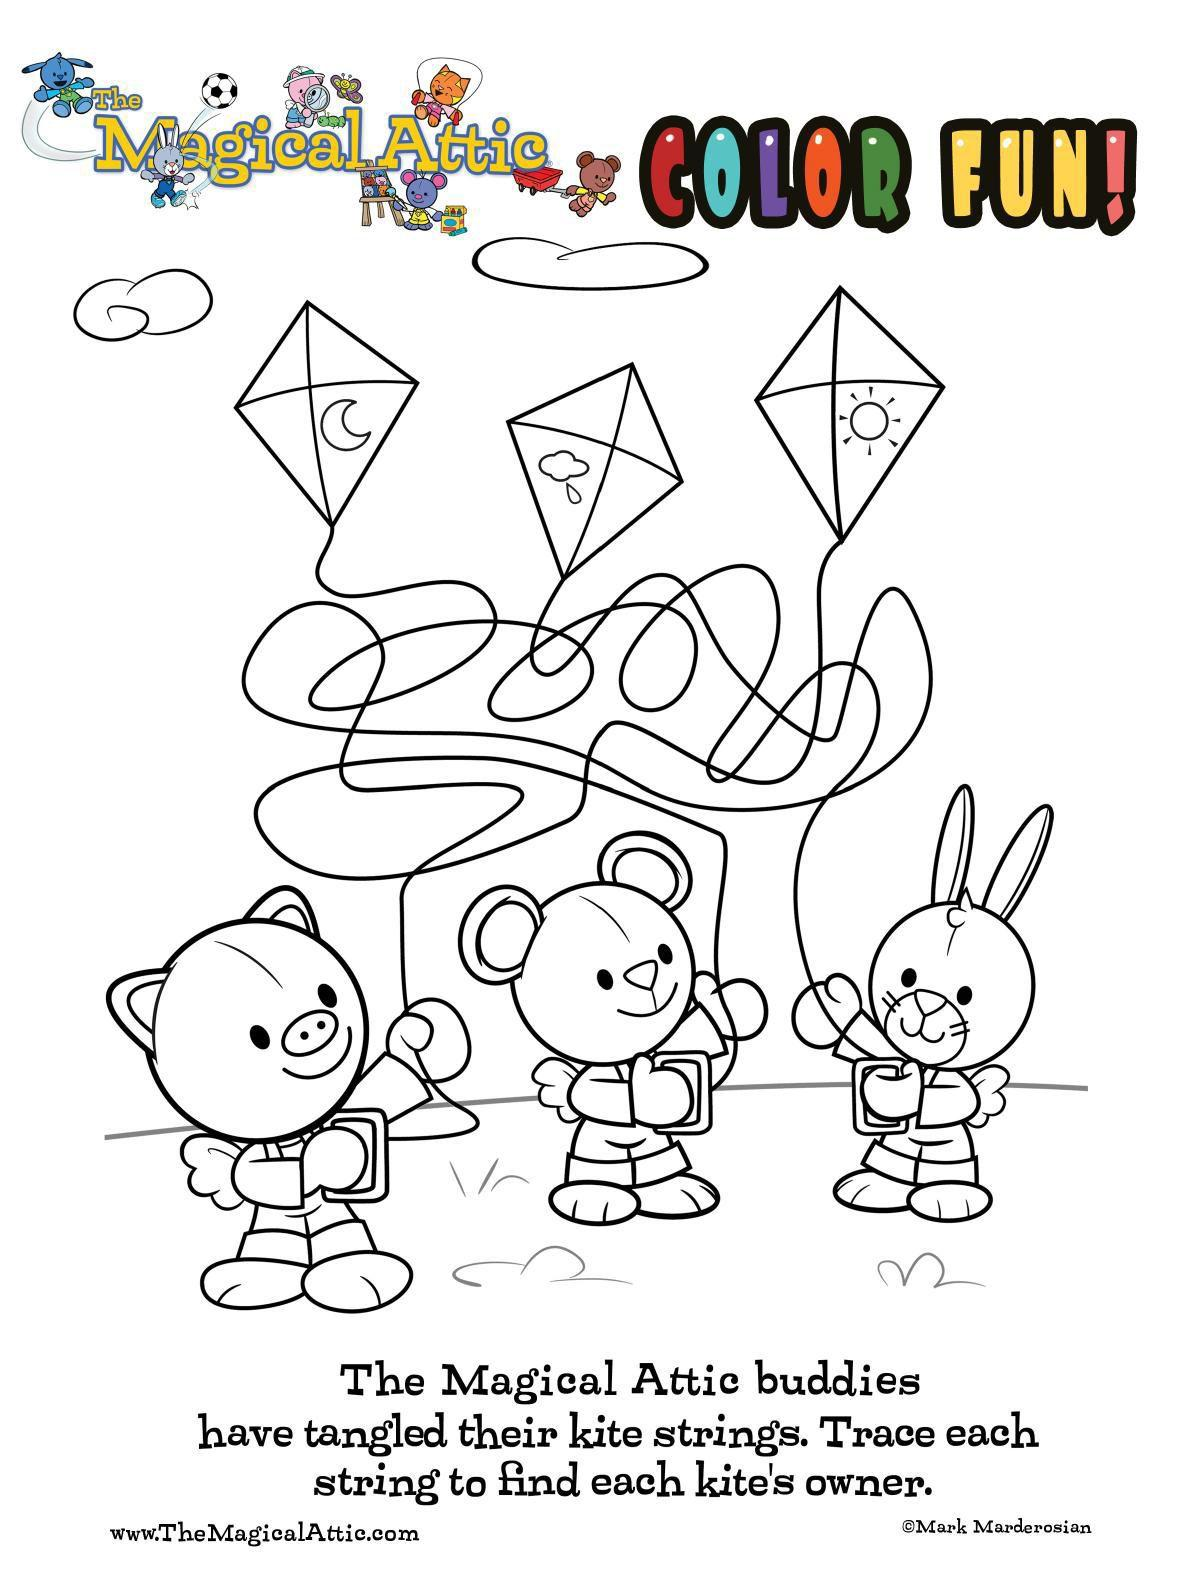 Download And Print These Kids Activities For Hours Of Fun While